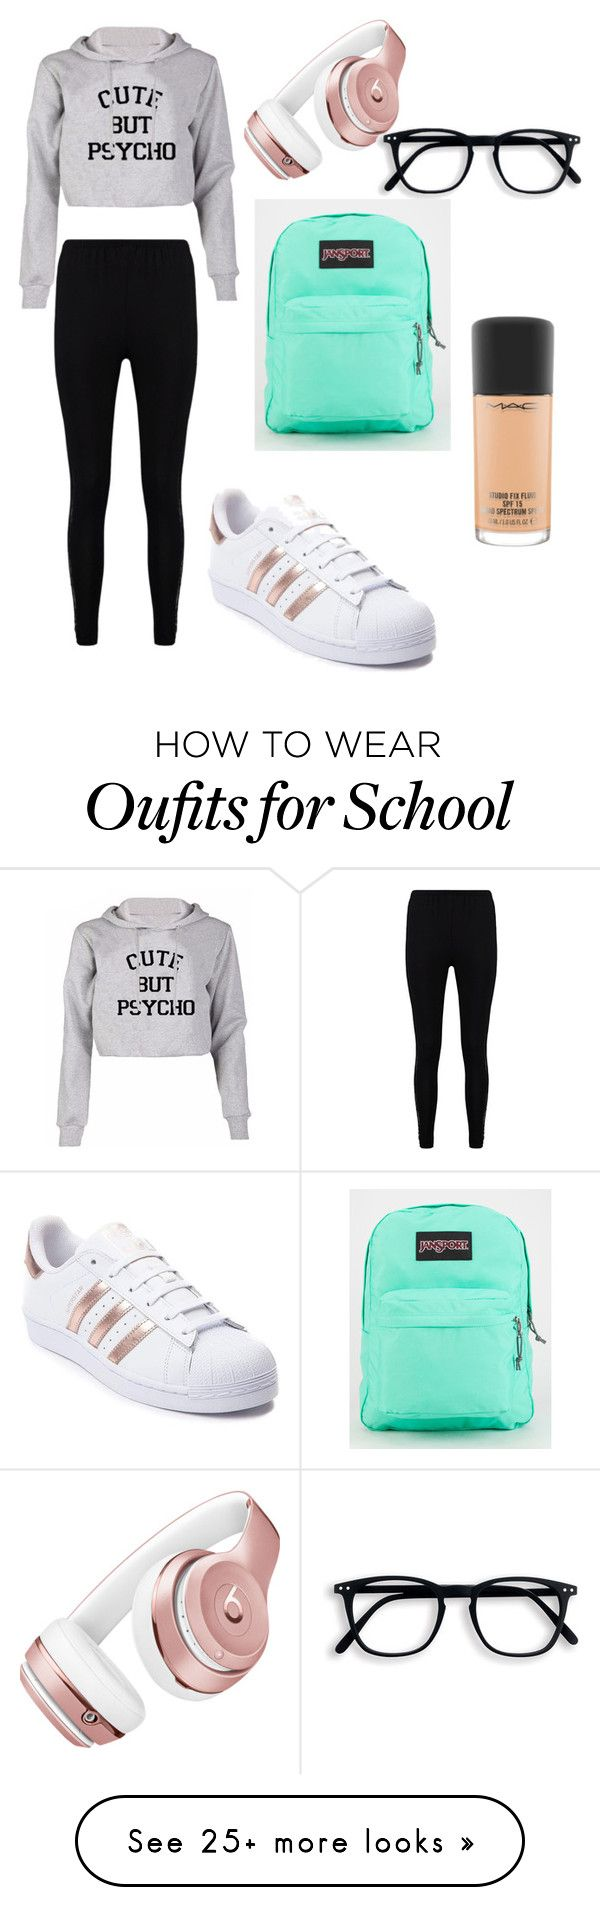 """When you're feeling lazy at school"" by coolytzel on Polyvore featuring Boohoo, adidas, JanSport, Beats by Dr. Dre and MAC Cosmetics"